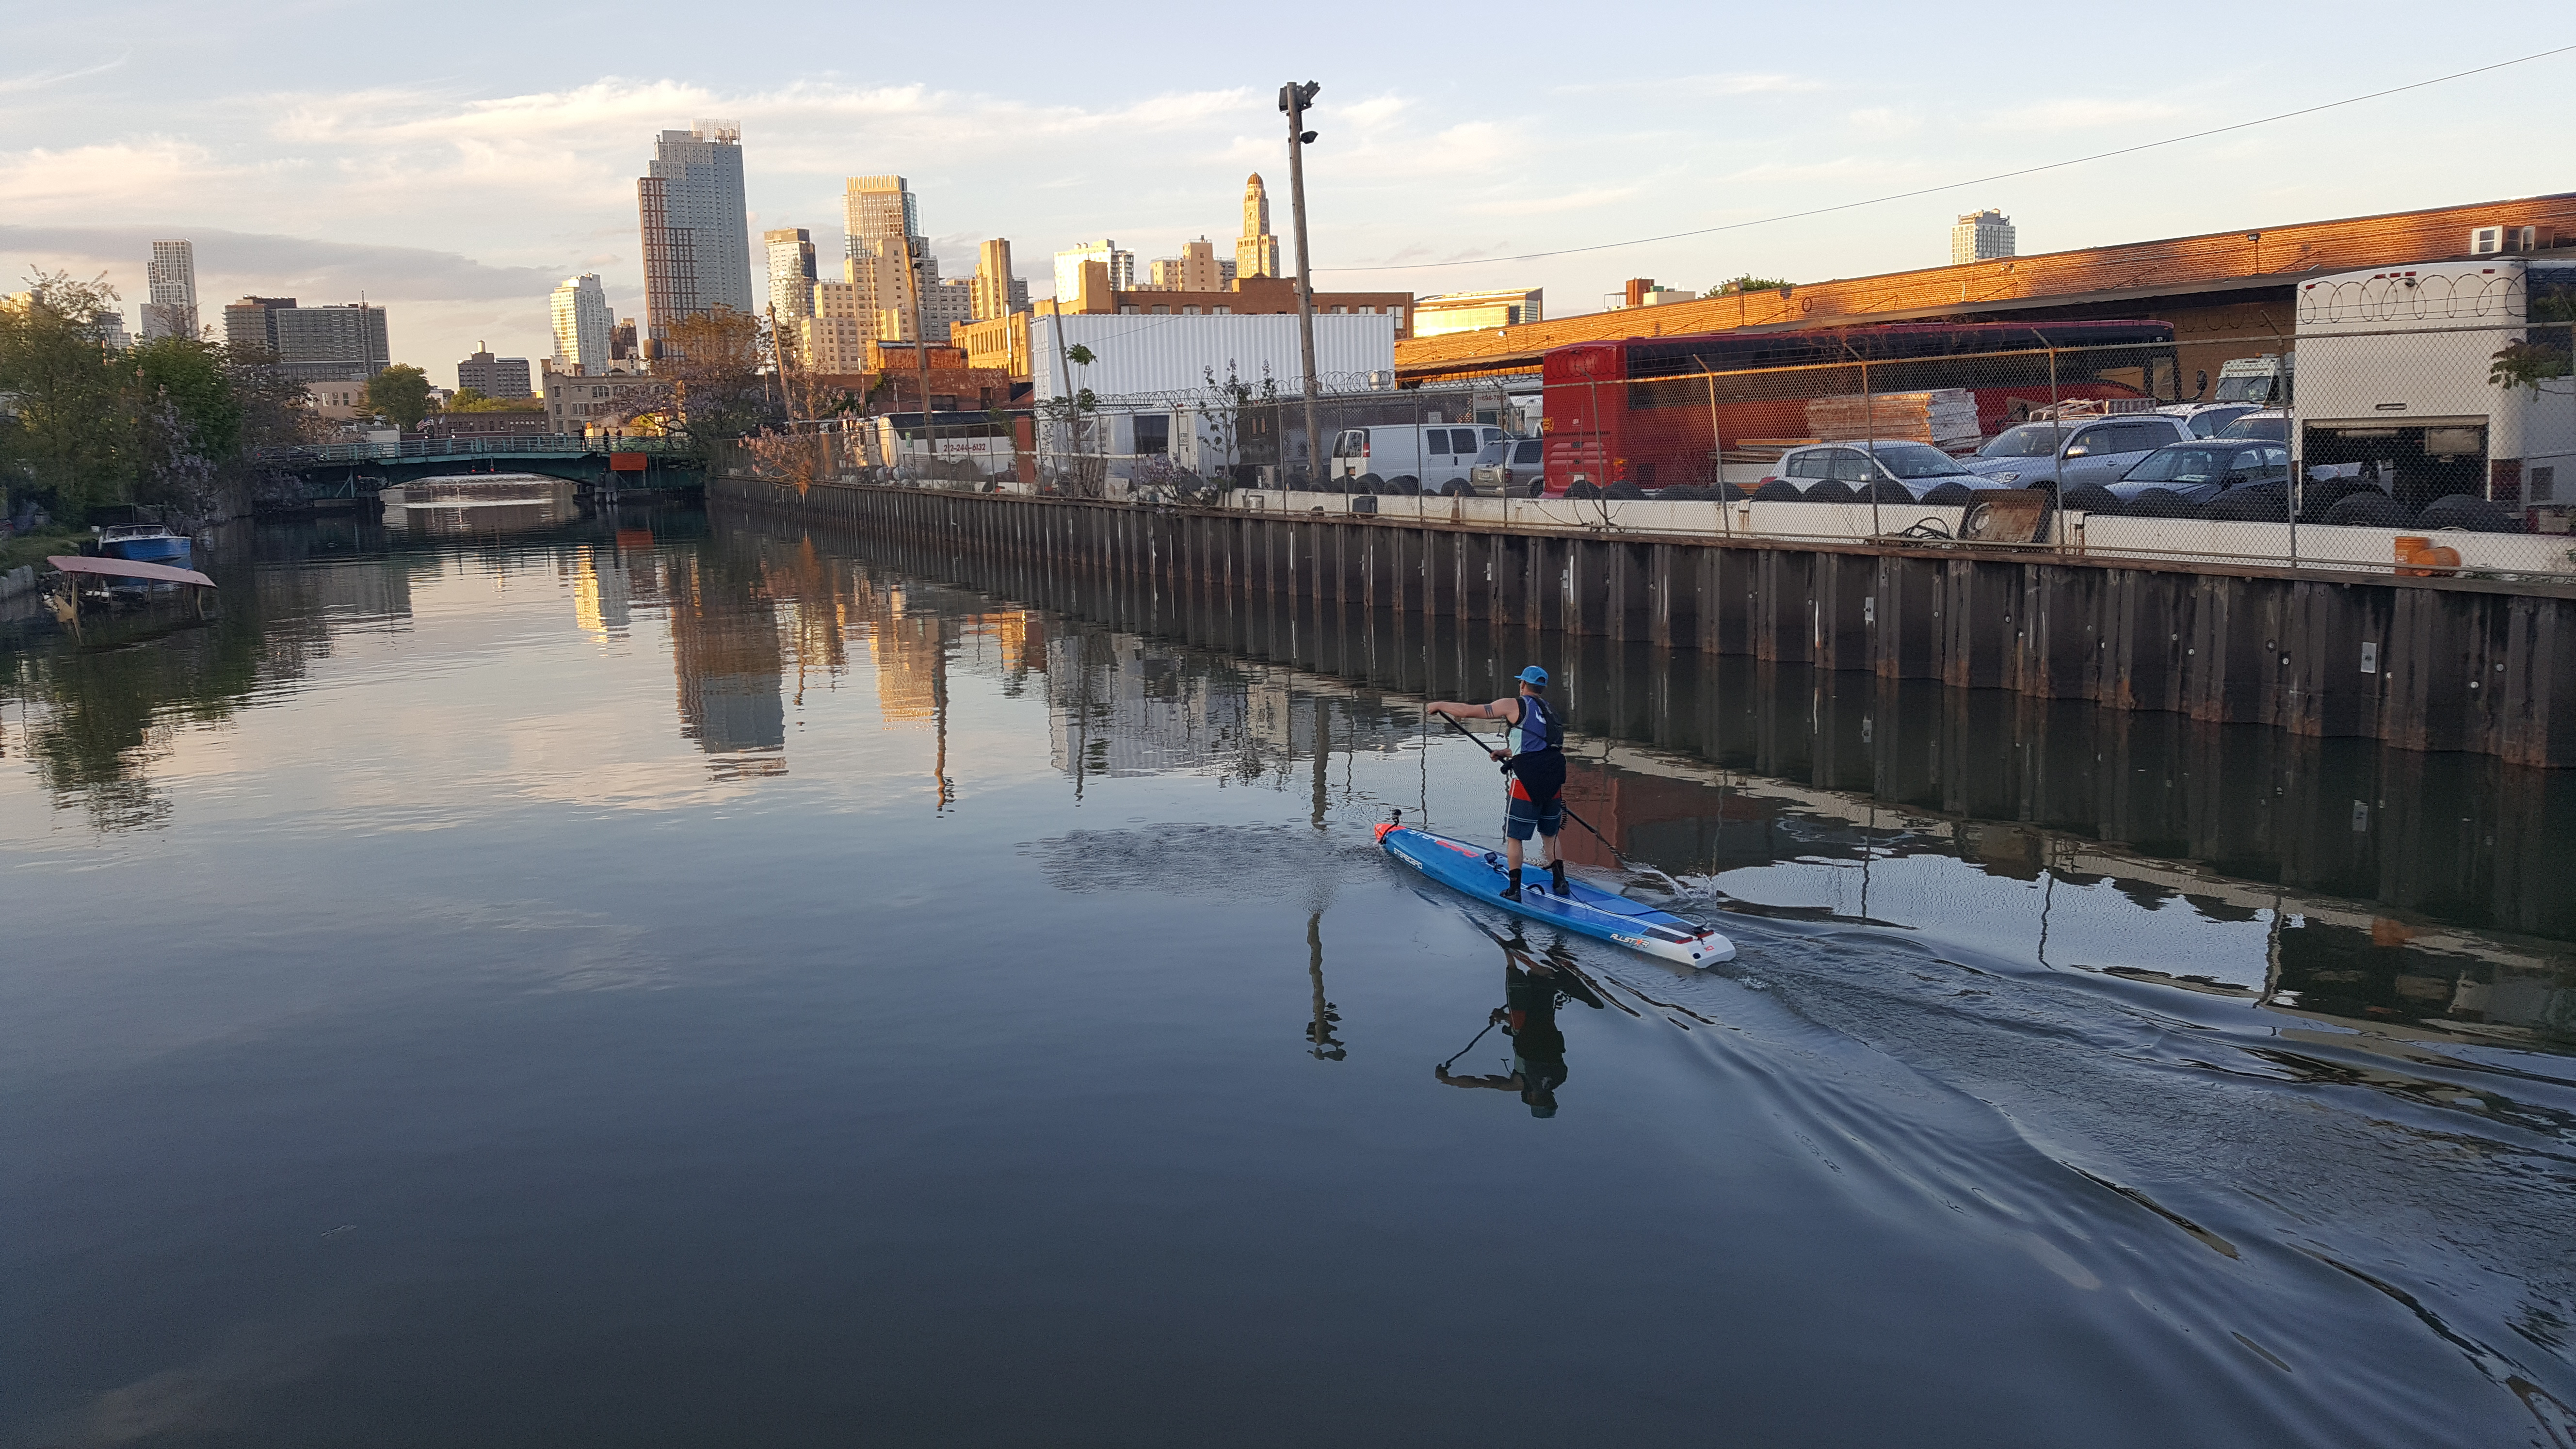 Stand Up Paddle-boarder (SUP) Recreating on Gowanus Canal